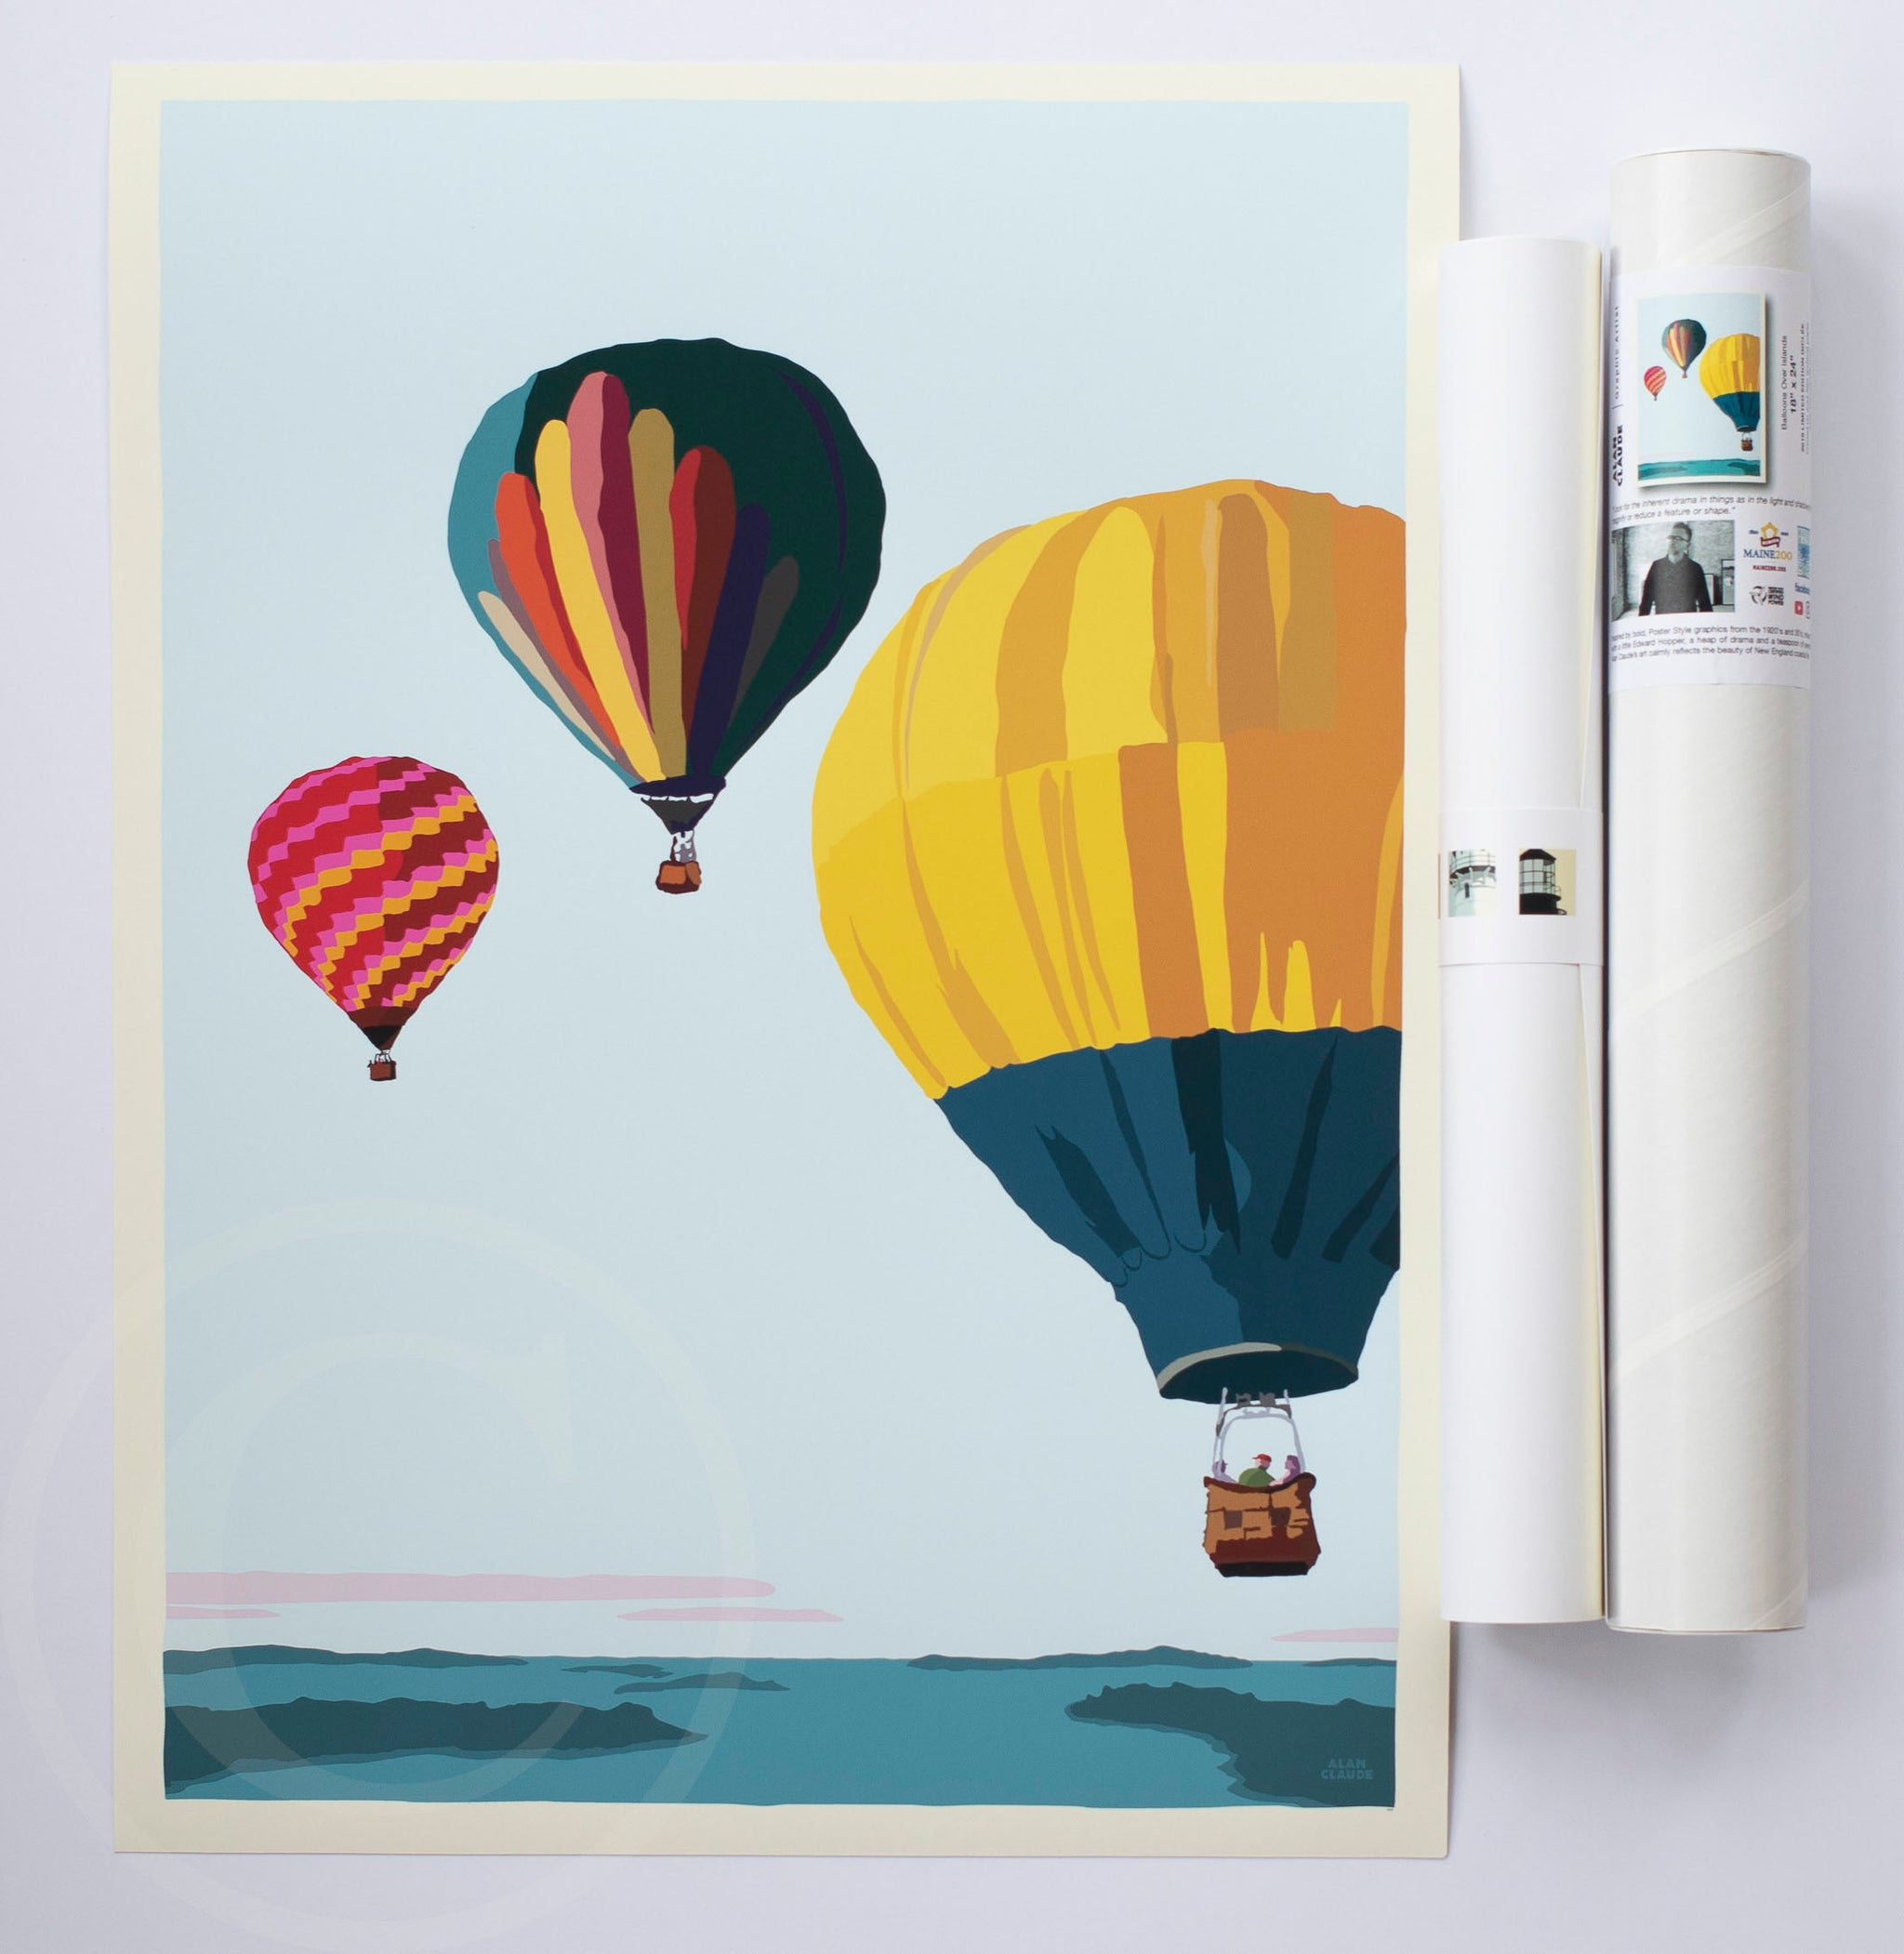 "Balloons Over Islands Art Print 18"" x 24"" Wall Poster"